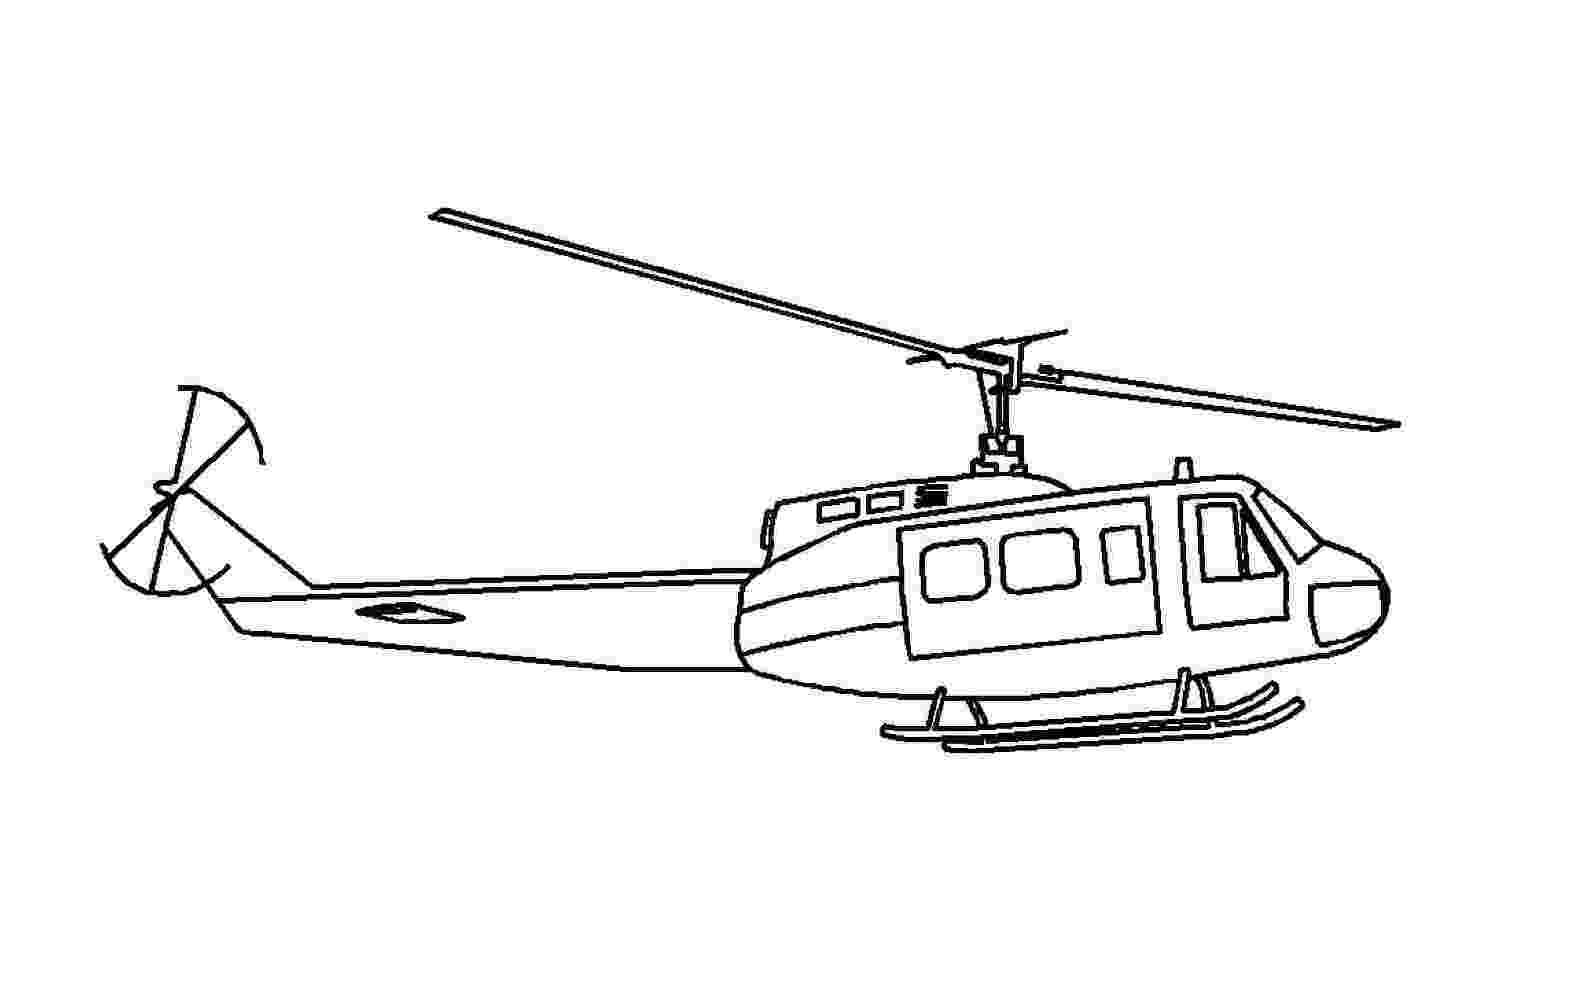 helicopter coloring page helicopter coloring pages to download and print for free coloring helicopter page